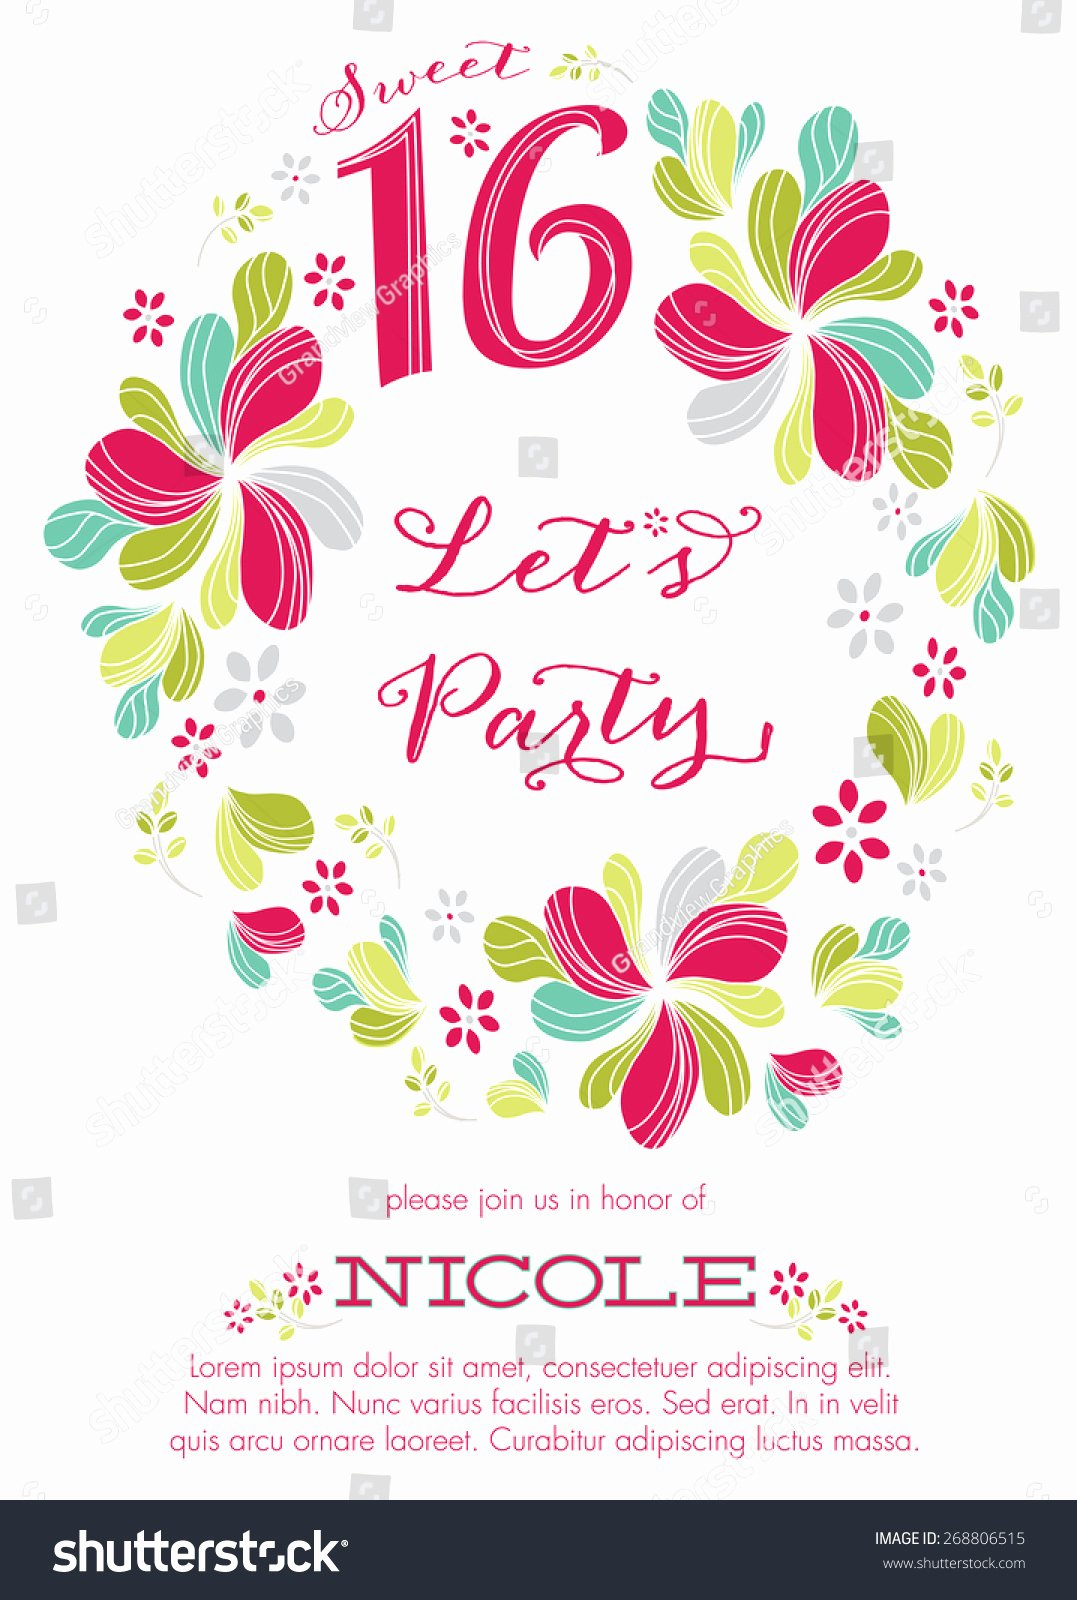 Sweet Sixteen Party Invitation Template Vector Stock